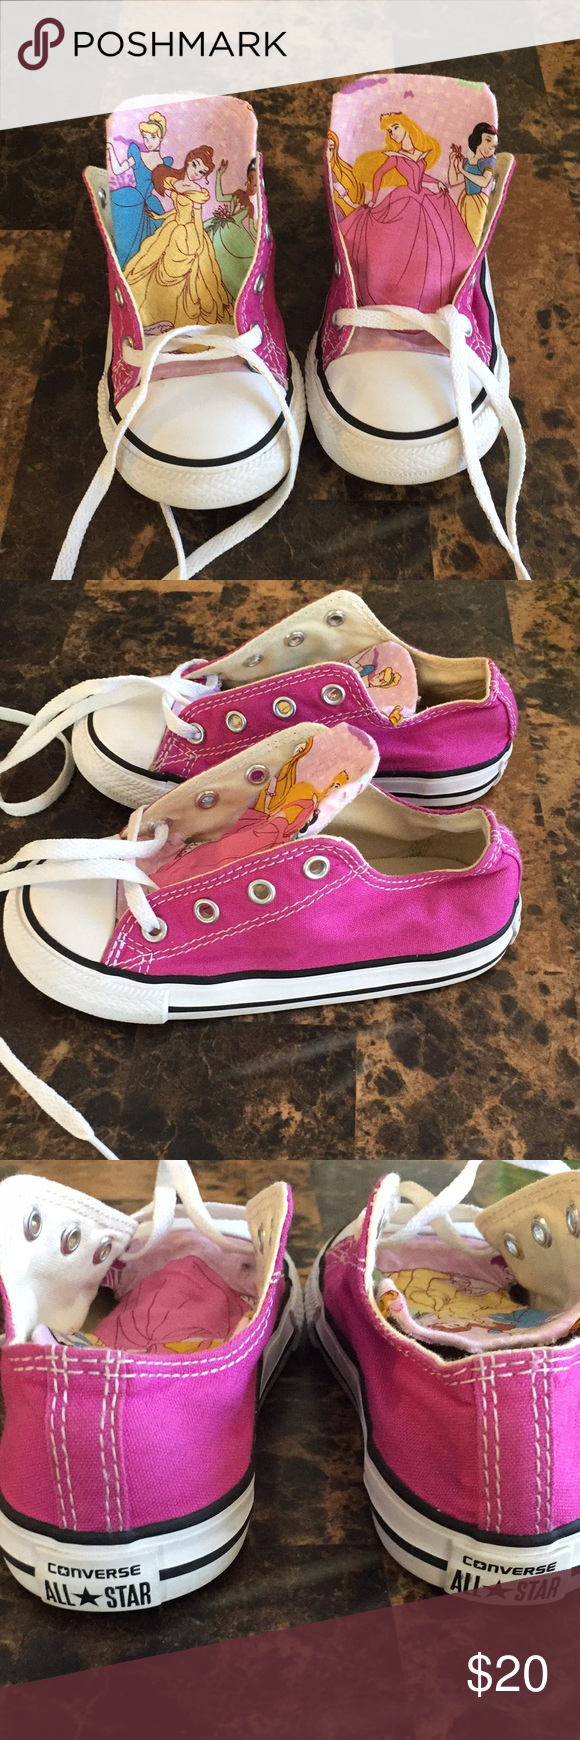 d6b4f6e204c4 Converse toddler sneakers size 9 Good used condition.The Disney character  material was put on